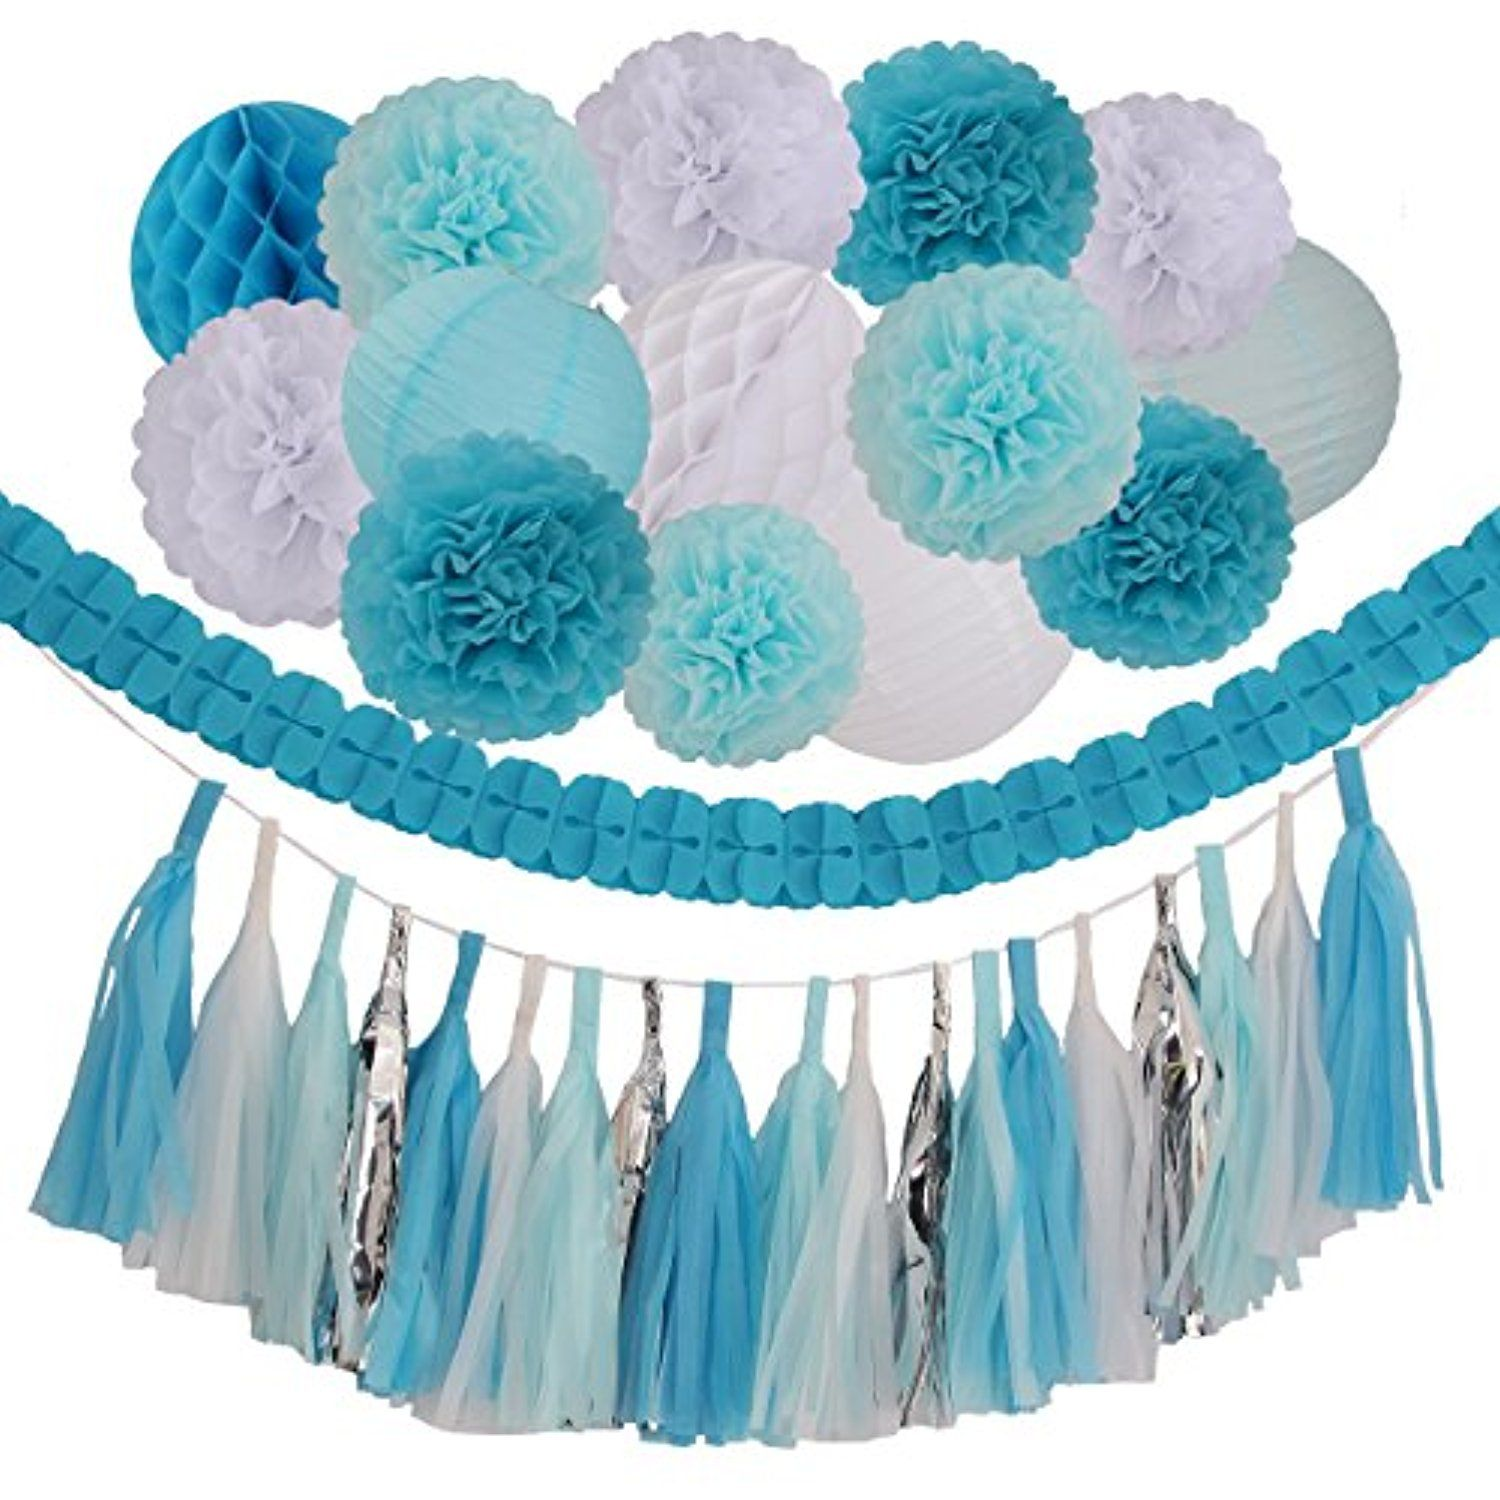 Light blue wedding decoration ideas   Pieces Blue Light Blue White Tissue Pom Poms Flower Party Paper